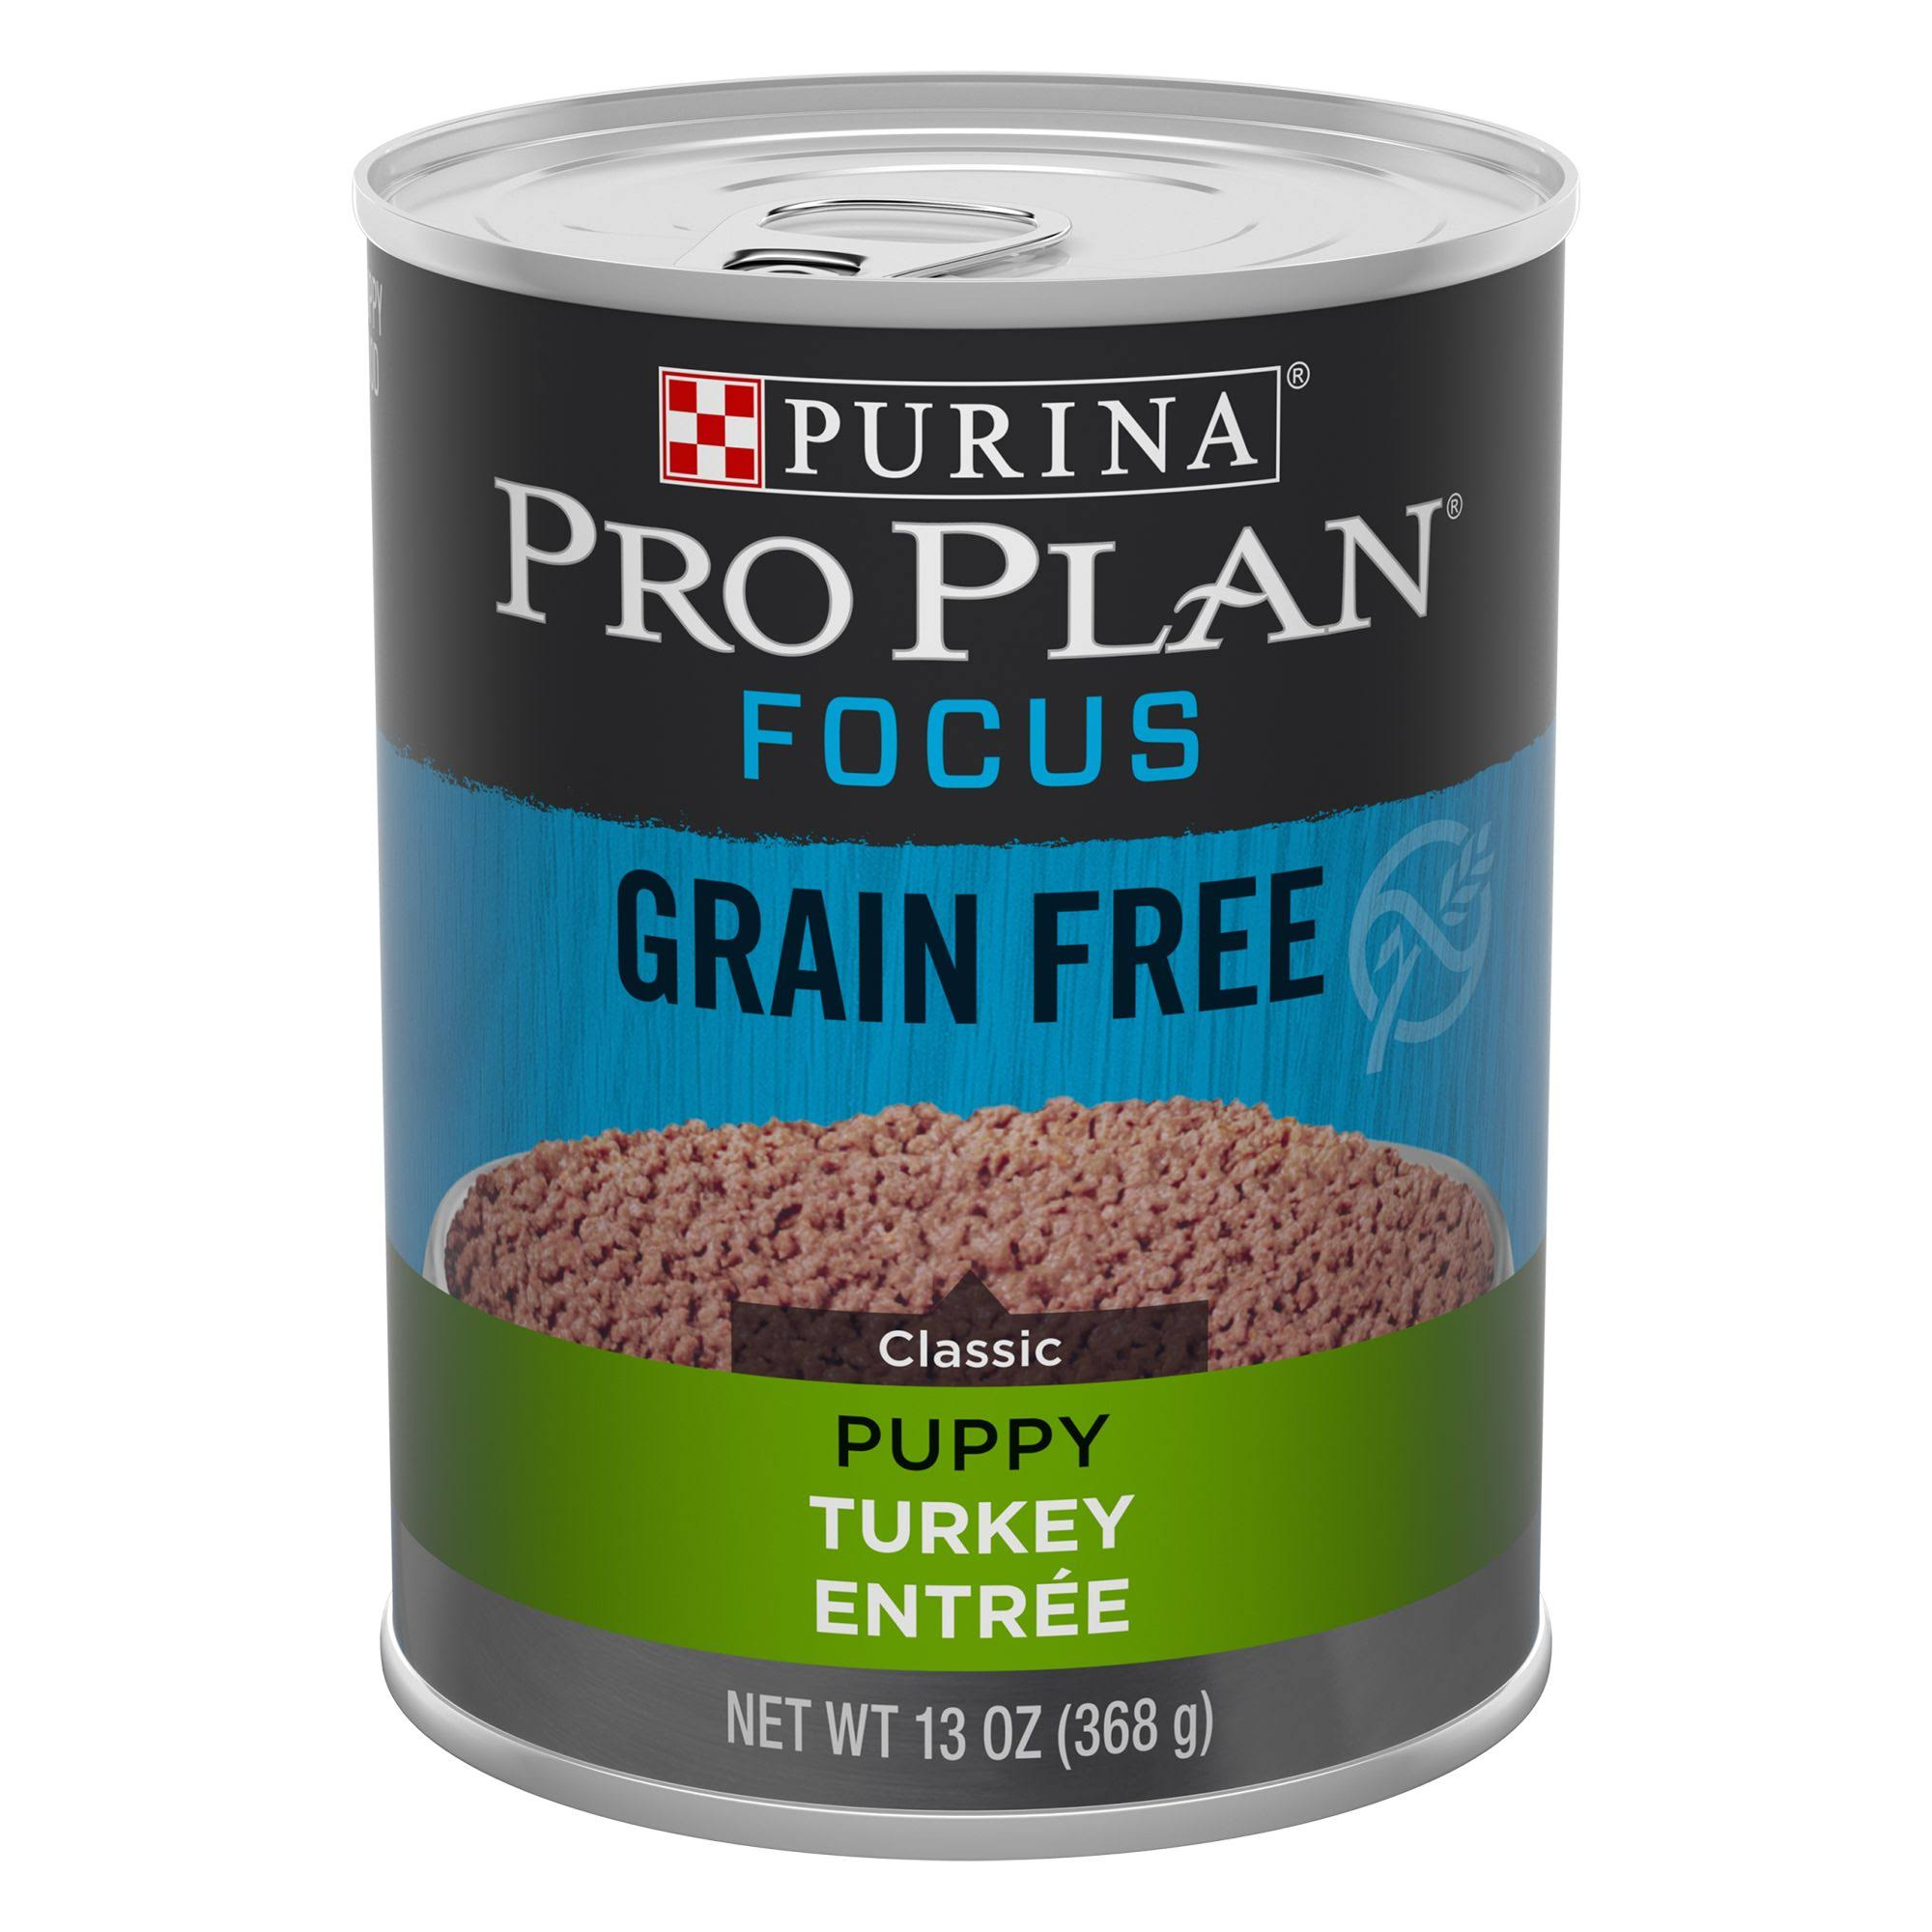 Purina Pro Plan Grain Free, High Protein Wet Puppy Food, Focus Classic Turkey Entree - 13 oz